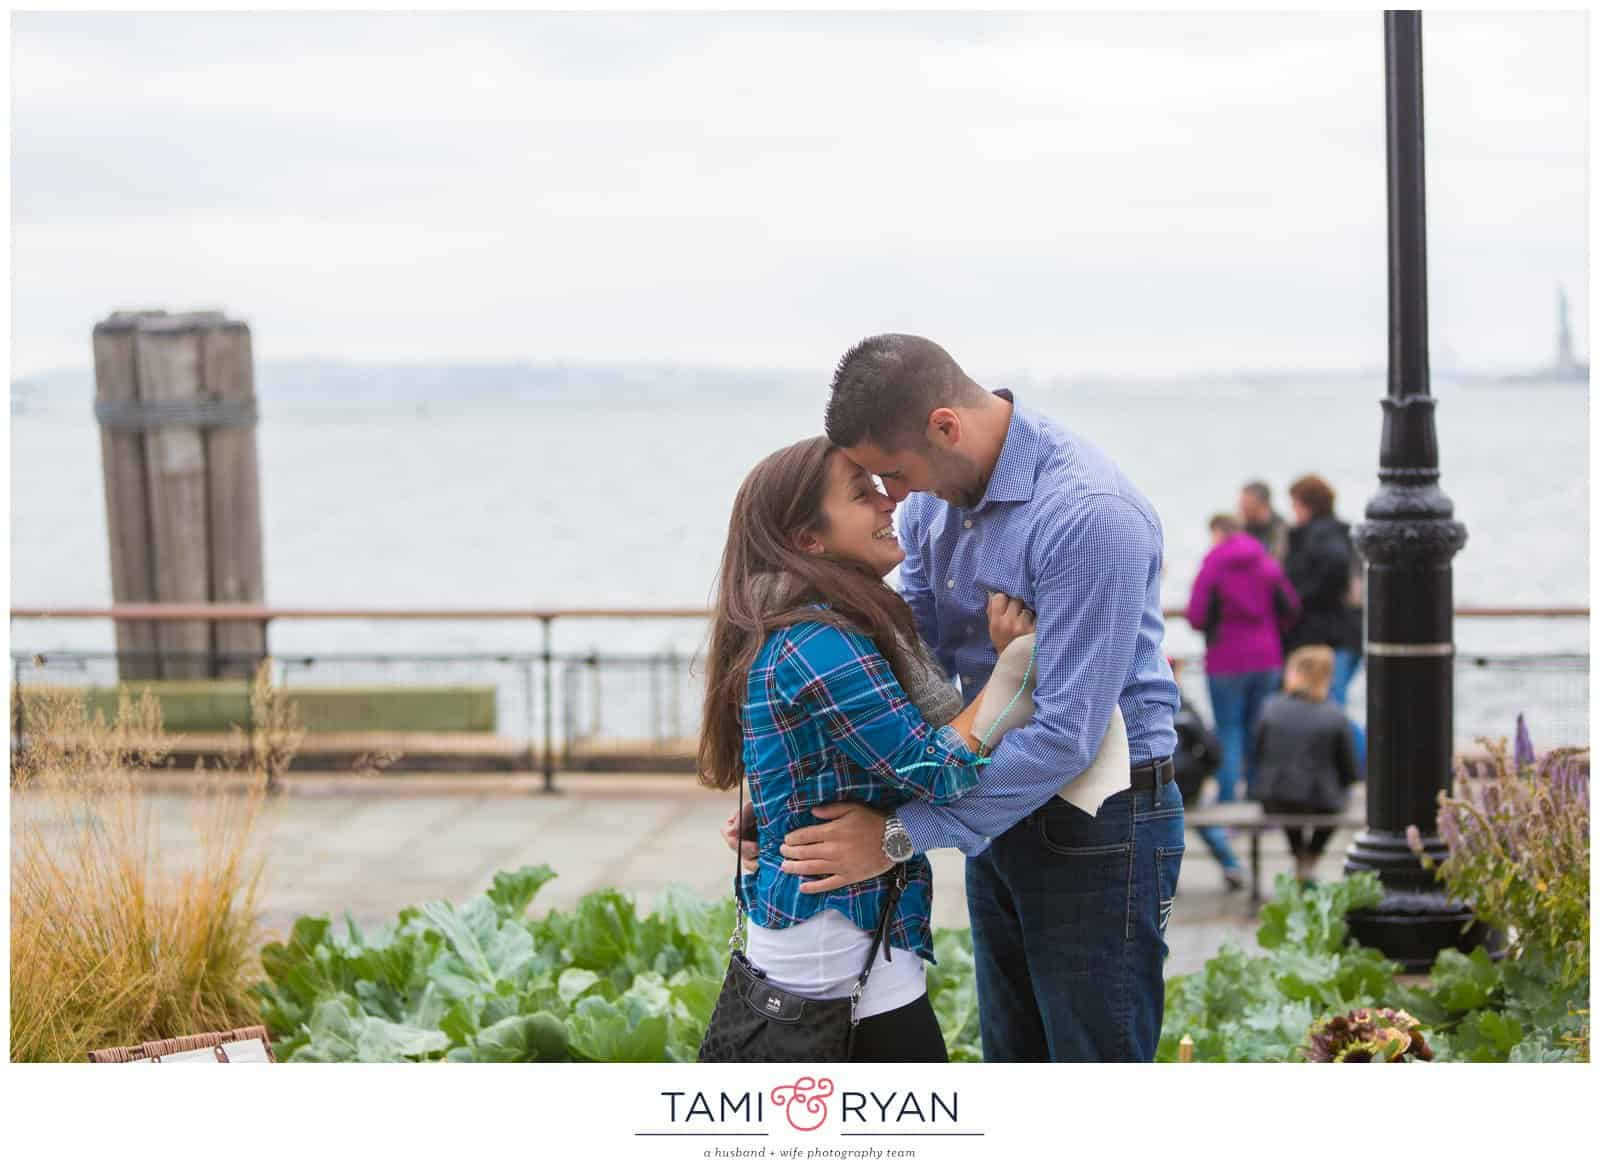 Rocco-Kait-New-York-City-Battery-Park-Proposal-Surprise-0055